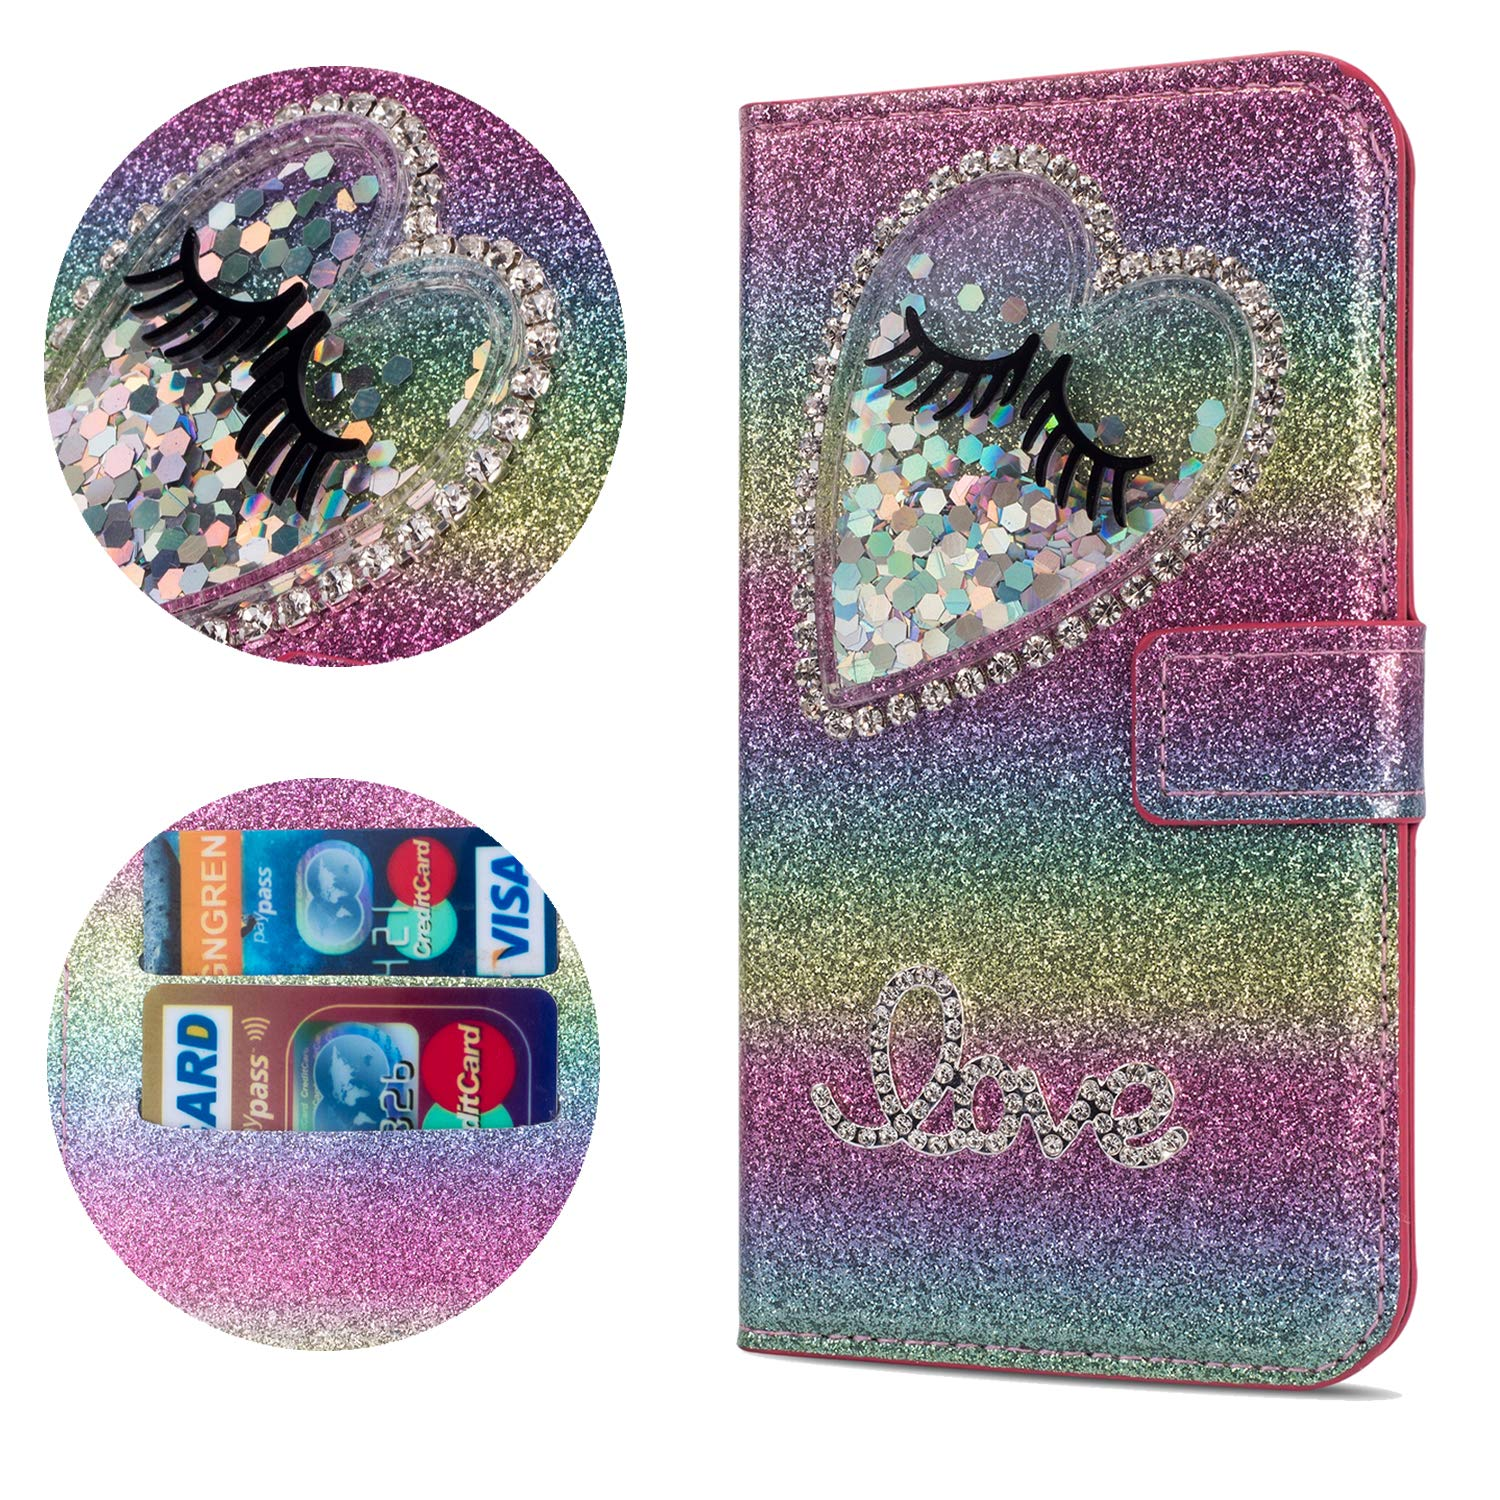 Stysen Flip Case for Huawei Mate 20 Pro,Leather Cover with 3D Handmade Diamond Heart Sequins Glitter Shiny Wallet Magnetic Clasp for Huawei Mate 20 Pro